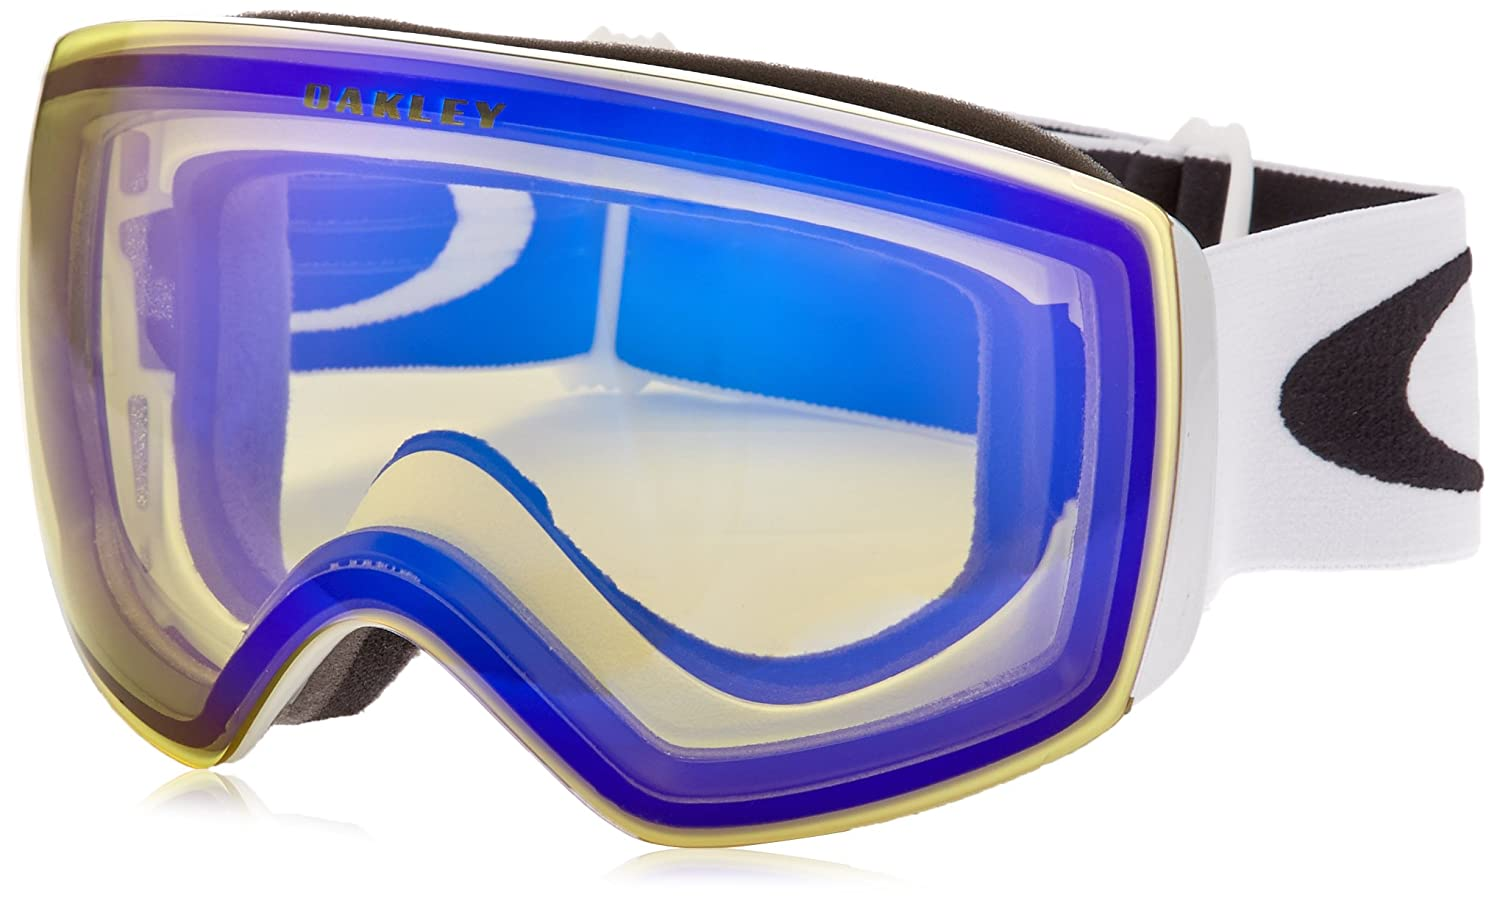 Oakley Flight Deck Glased ski/snowboard